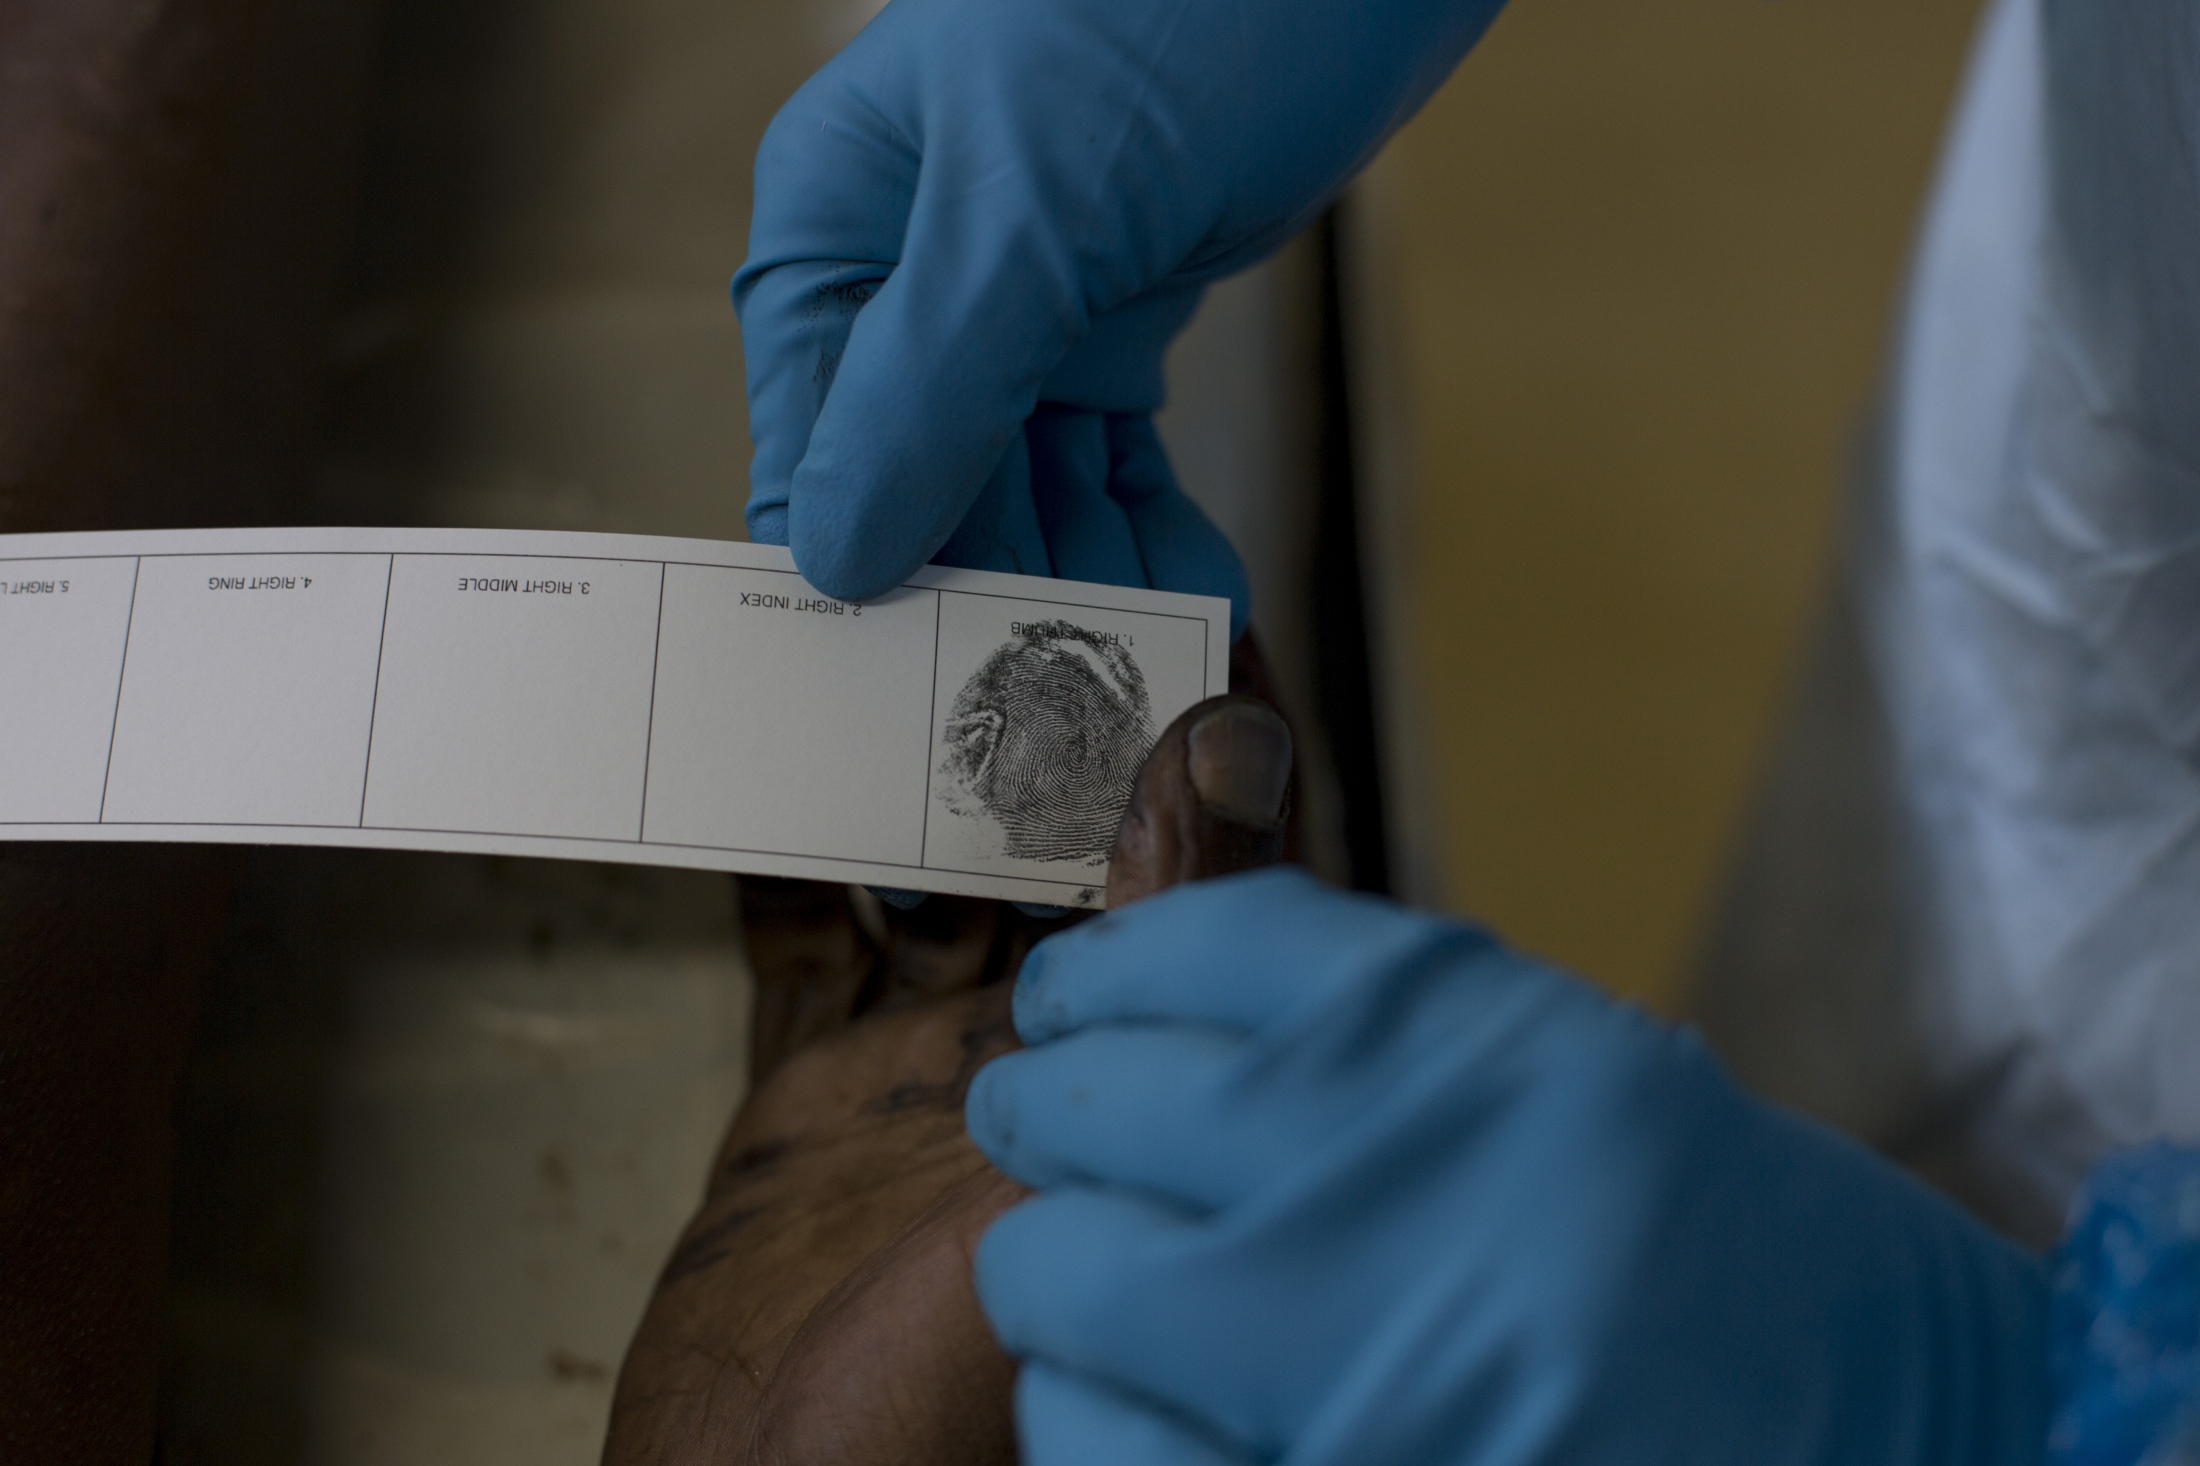 """In this Wednesday, April 18, 2018 photo, a pathologist takes fingerprints of an unidentified male for forensic examination at a mortuary in Johannesburg. The fingerprint are sent to a database of the South Africa police department in order to find a match. If not, the bodies get buried in so called """"pauper graves""""."""